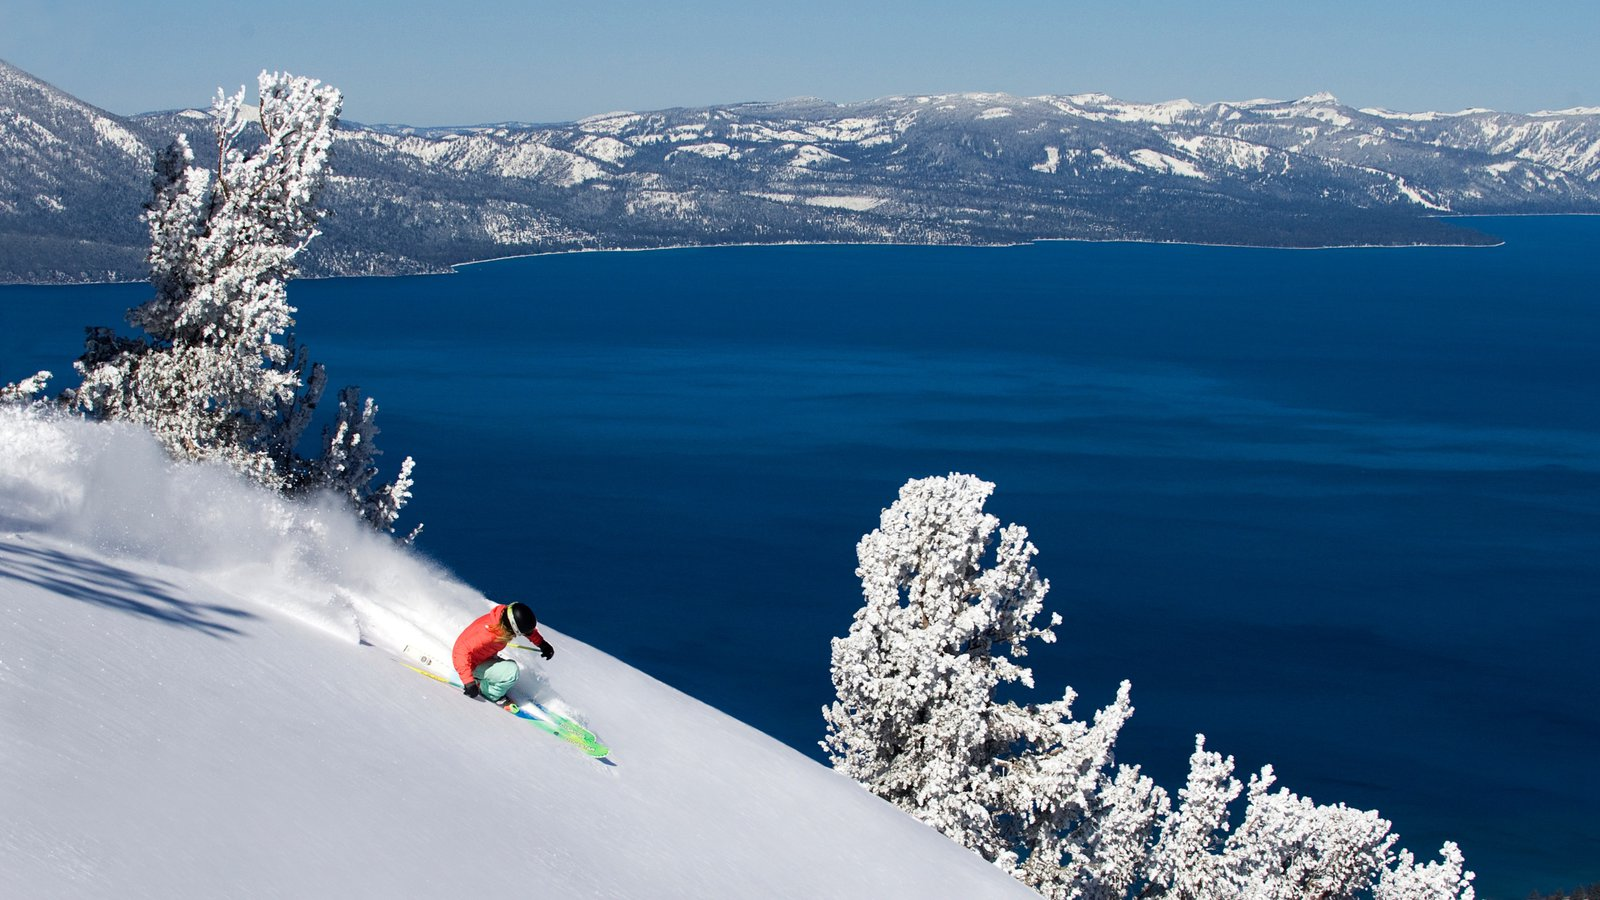 landscape pictures: view images of lake tahoe